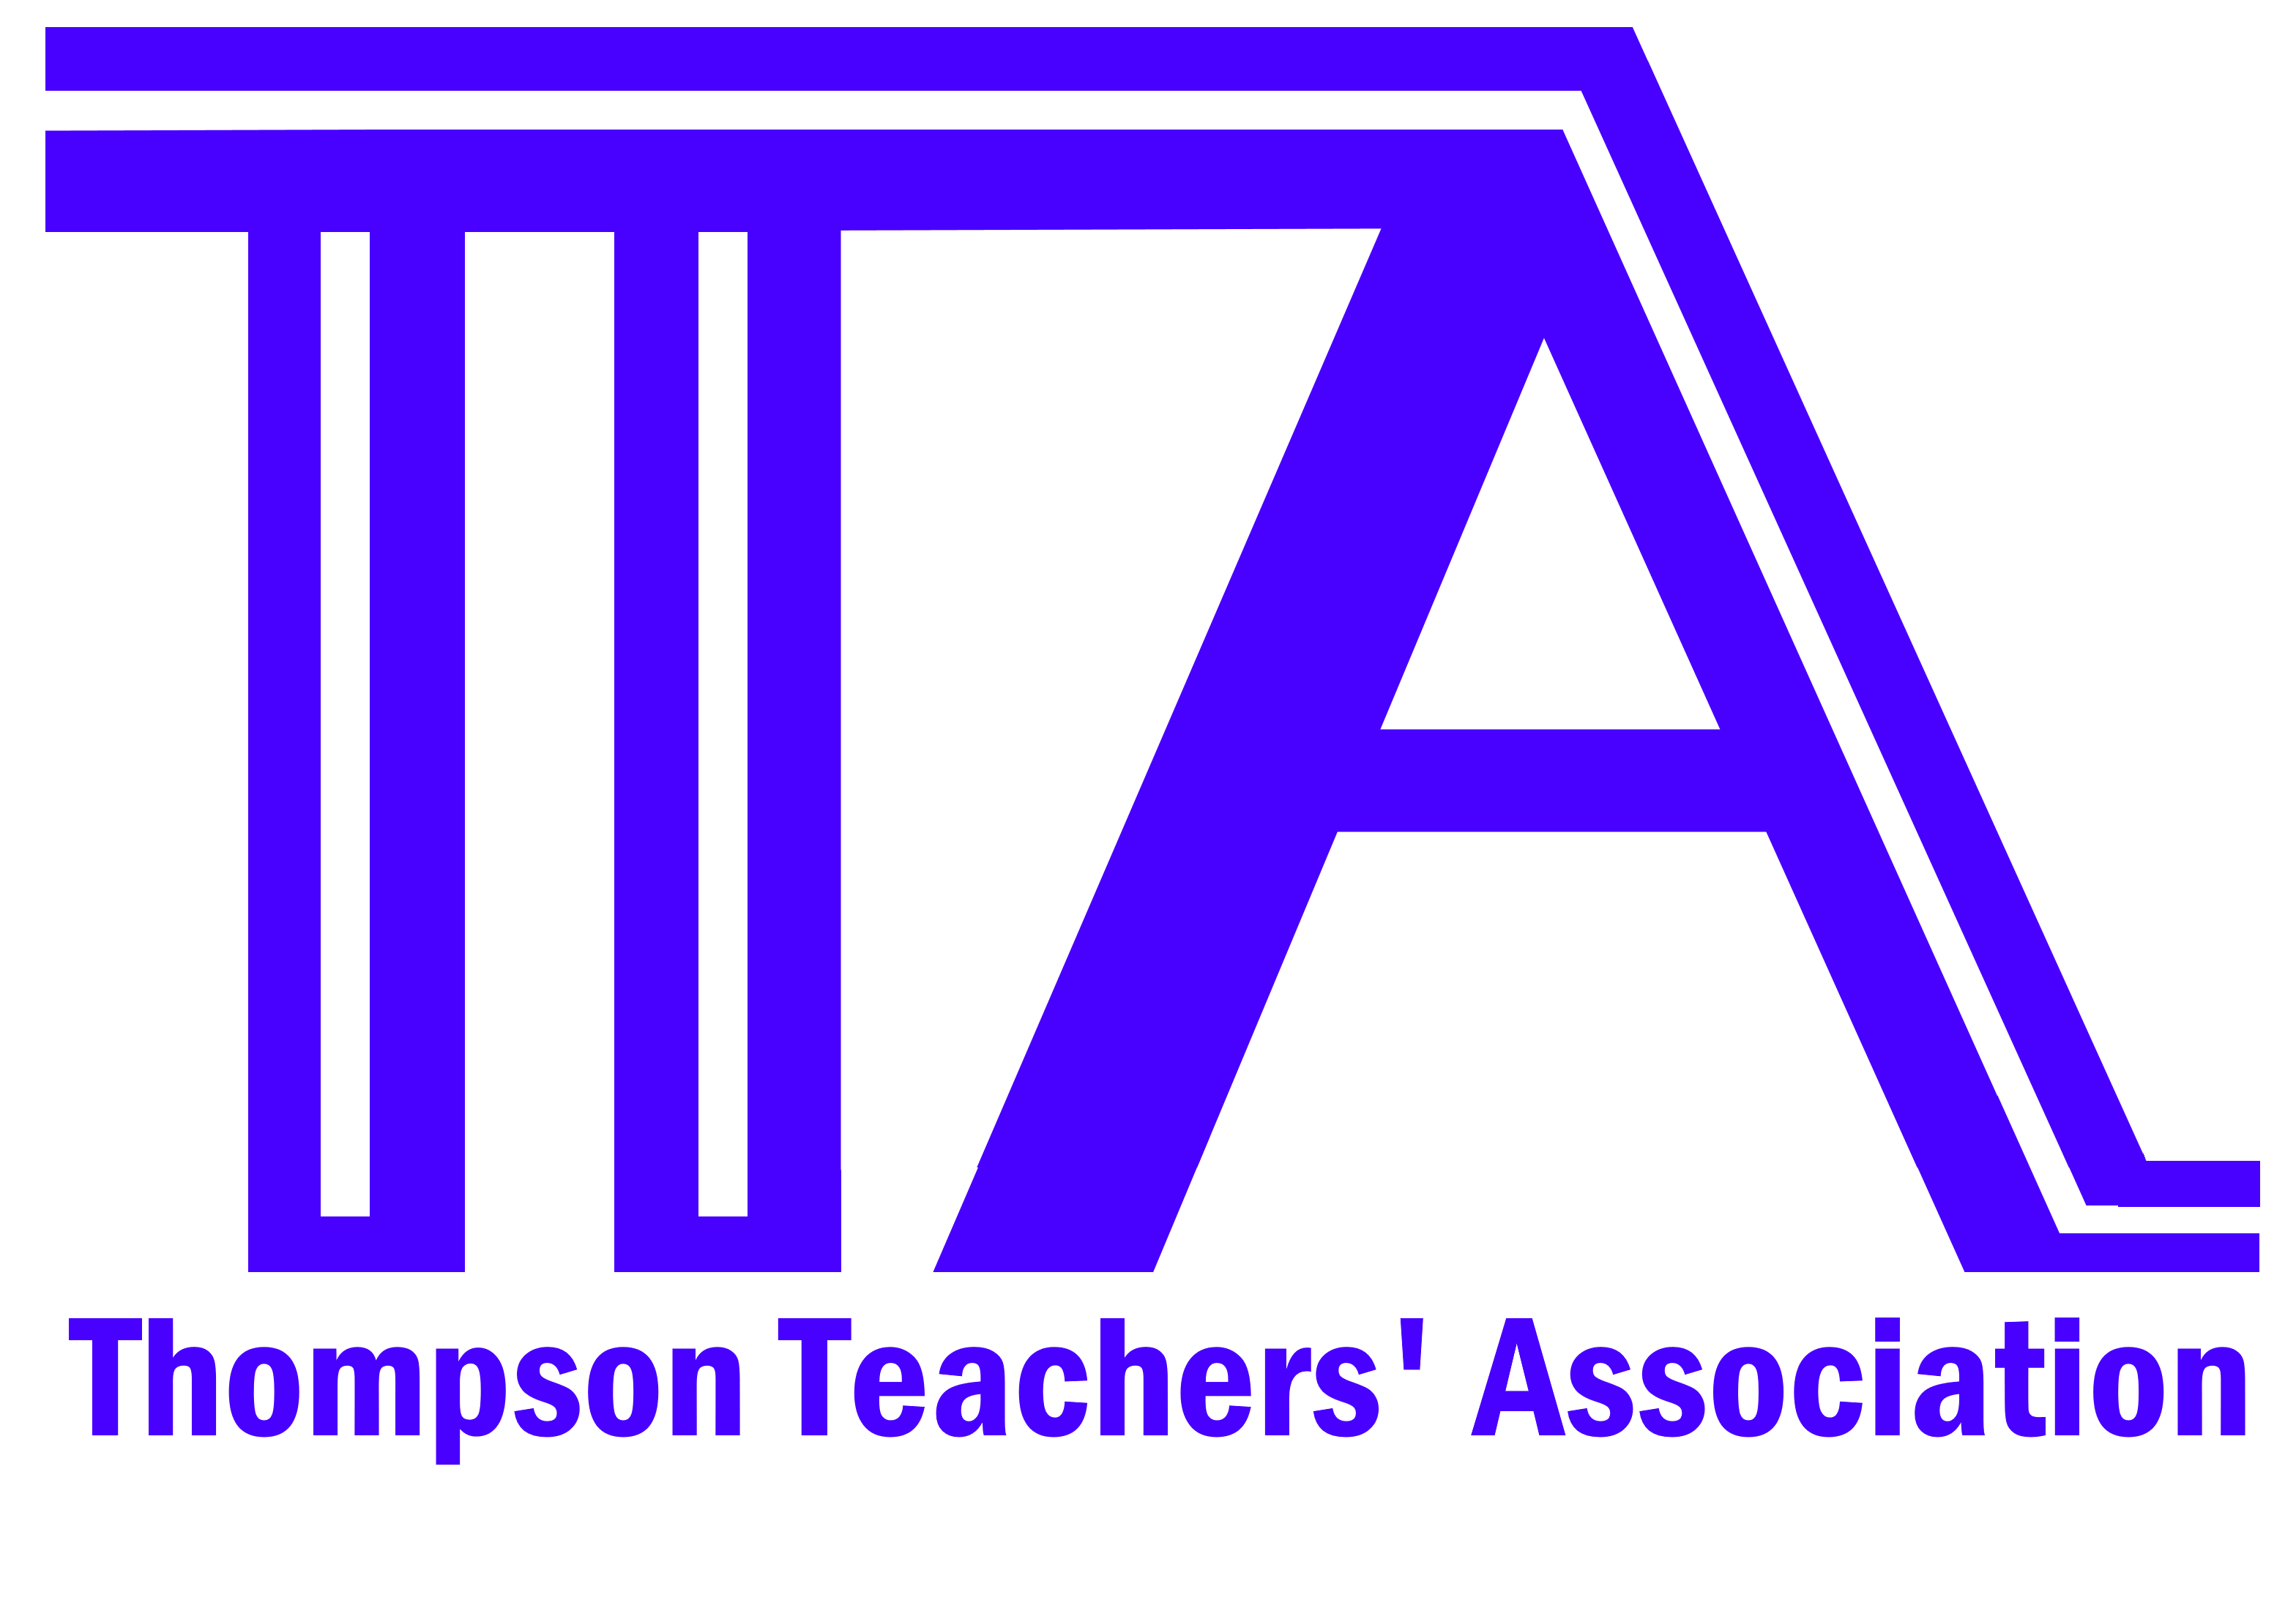 Thompson Teachers' Association